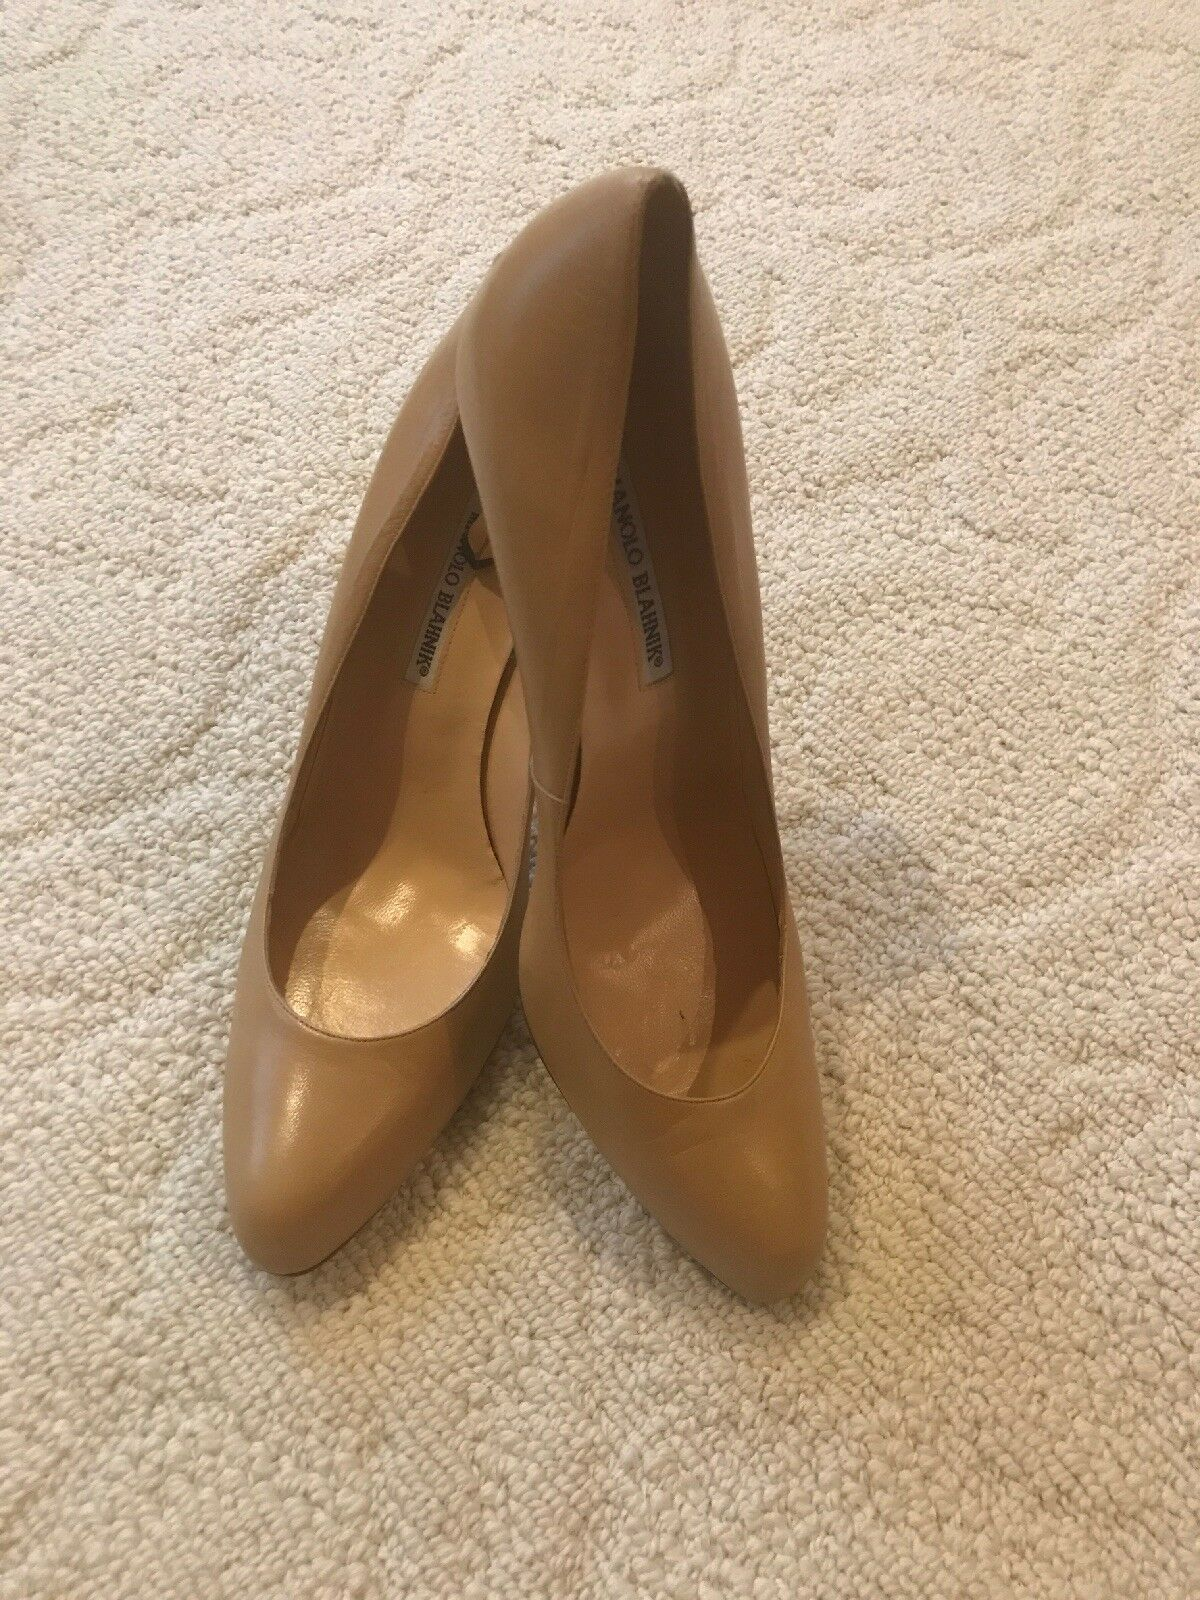 Manolo Blahnik Nude Leather New High Heels Pointy schuhe Pumps 41.5 New Leather  625 a0bbb8